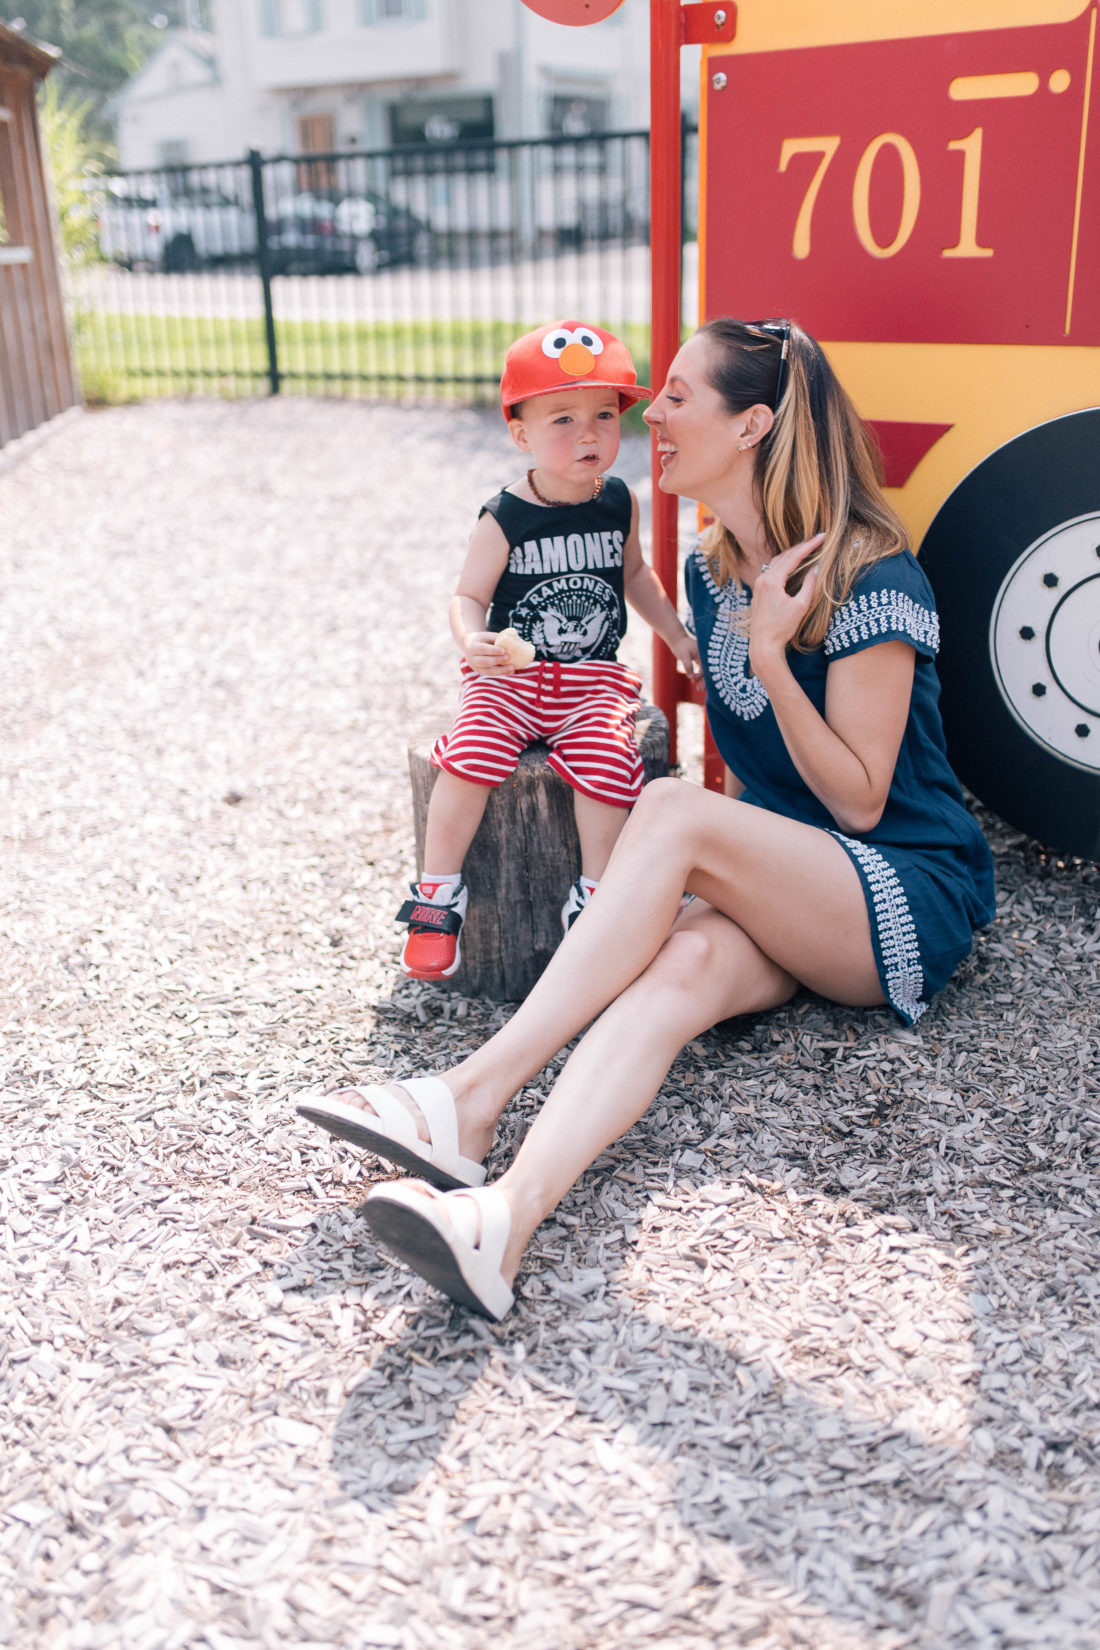 Eva Amurri Martino sits on the ground at the playground, and leans in to give her son a kiss on the cheek while he finishes his snack